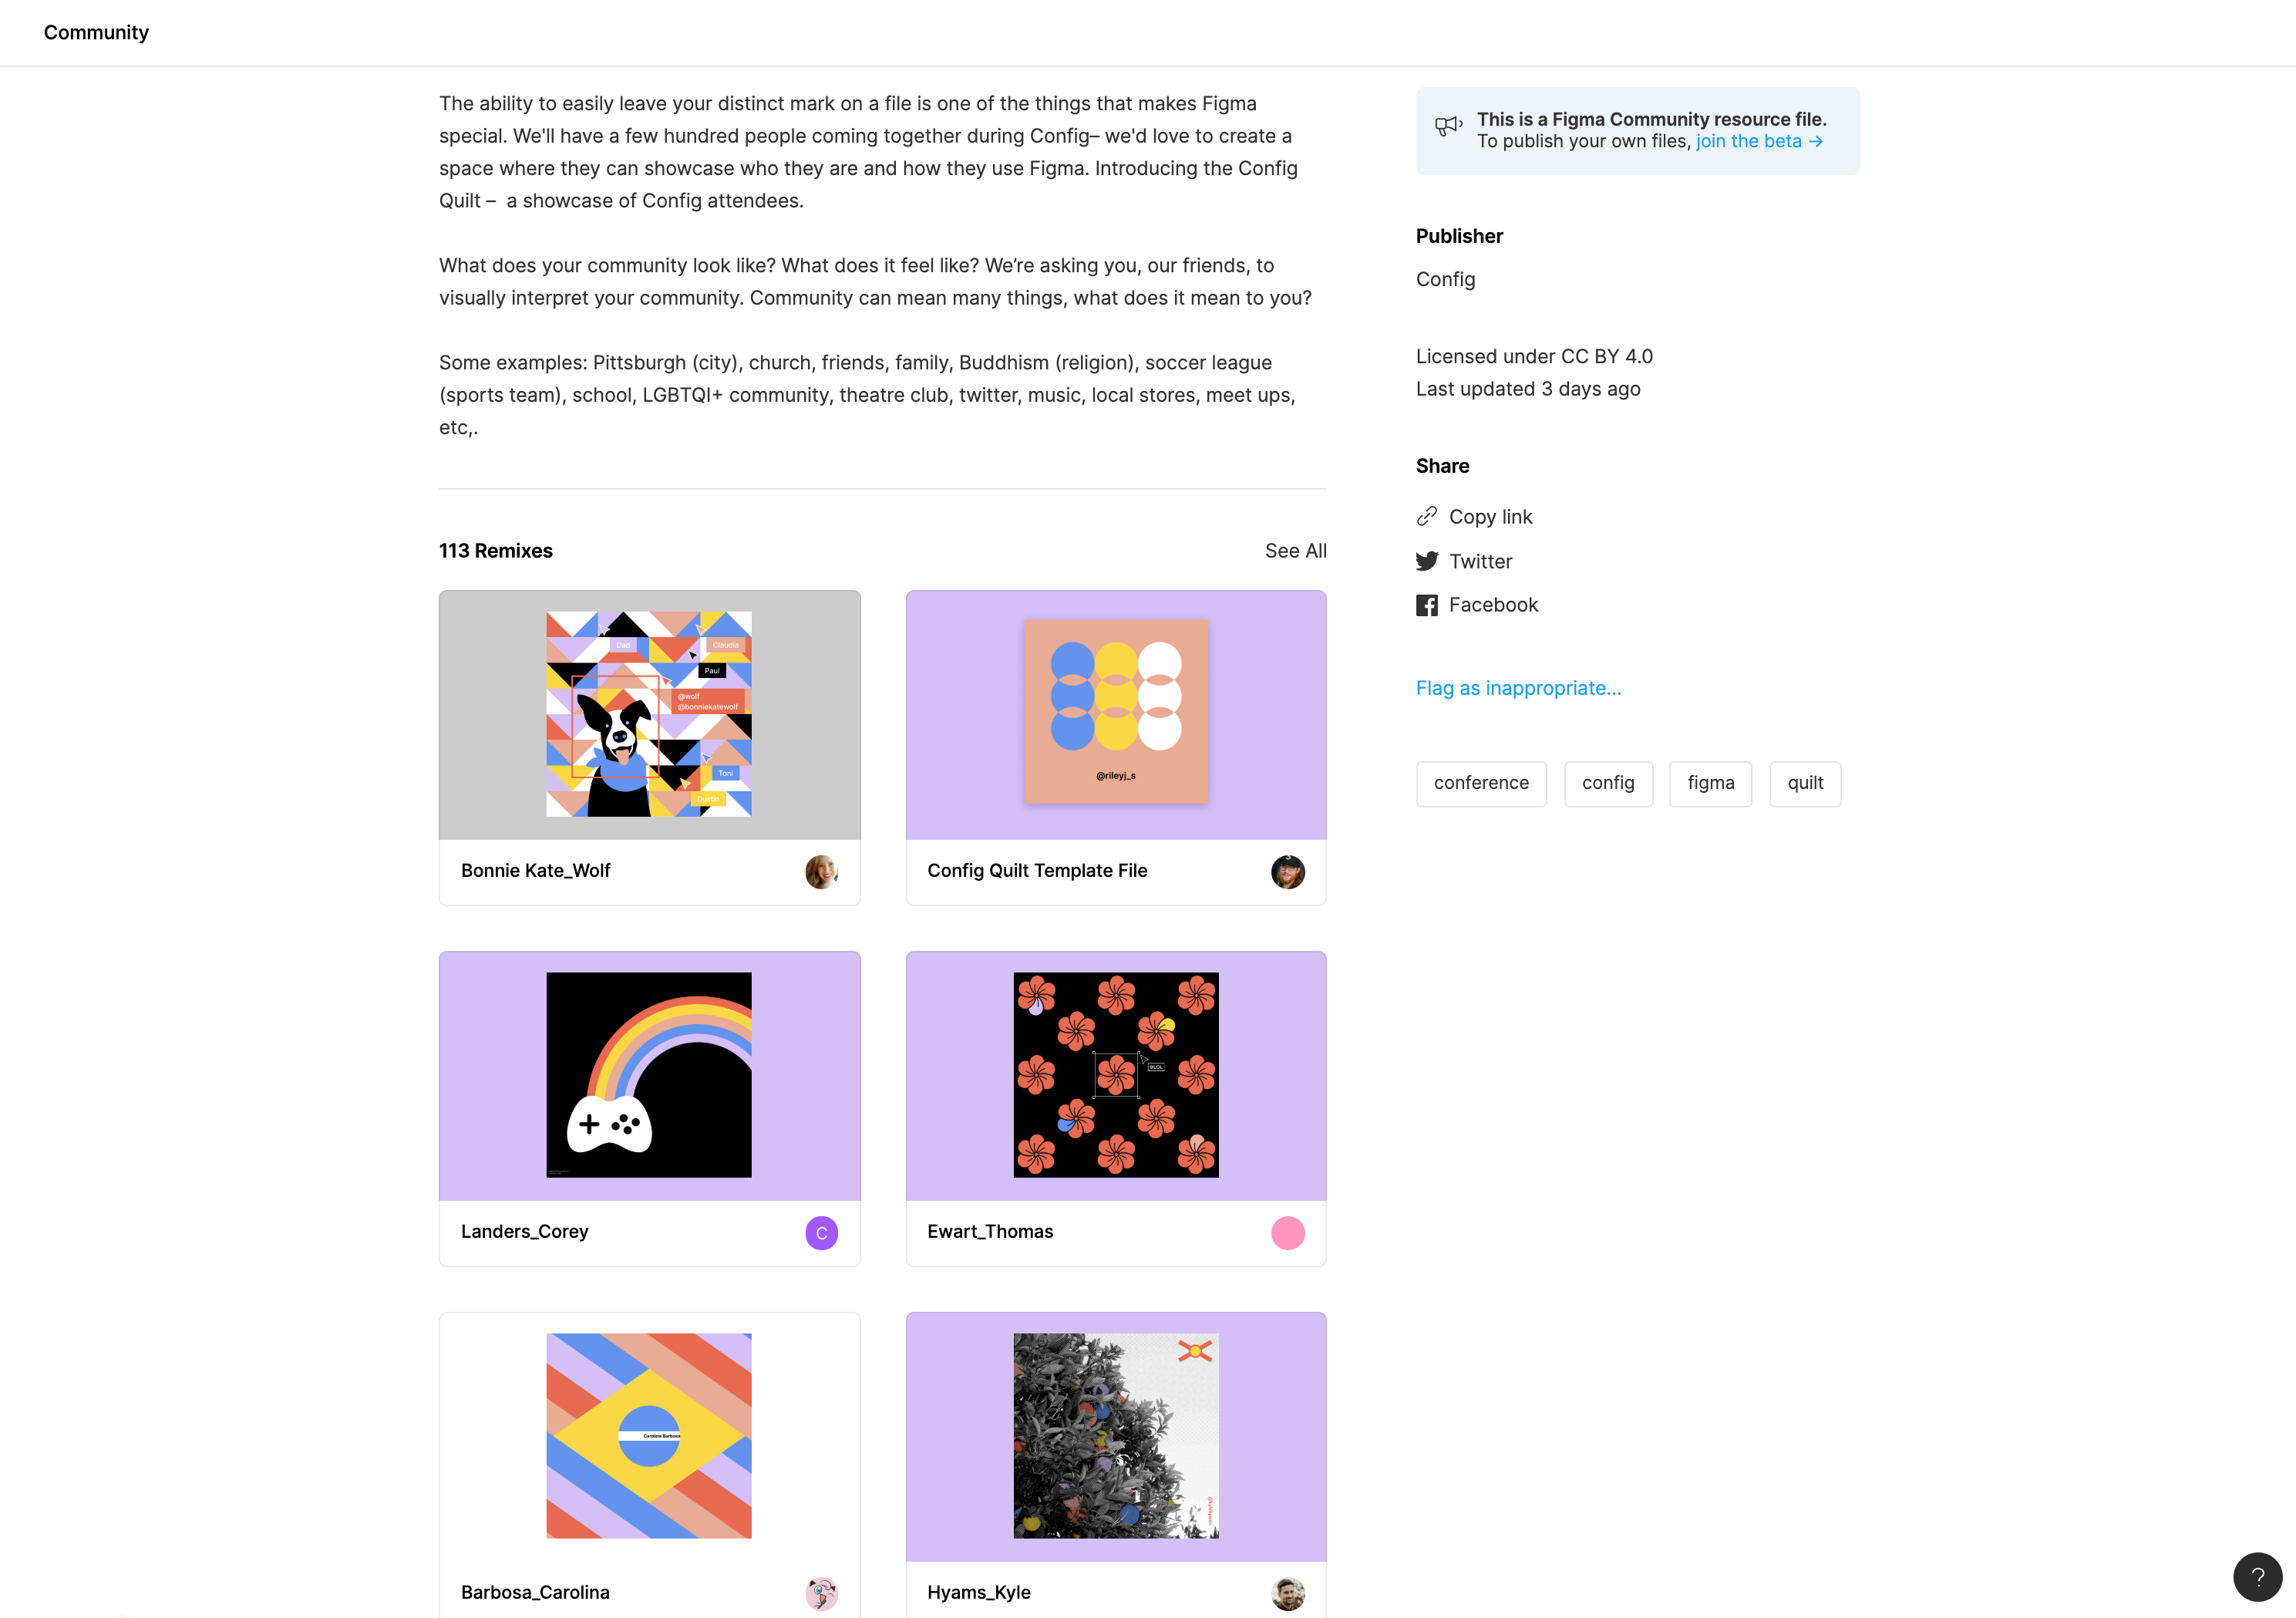 A community file with 113 remixes. The original file is a quilt from Config 2019, Figma's annual user conference. The remixes were sourced from the community.